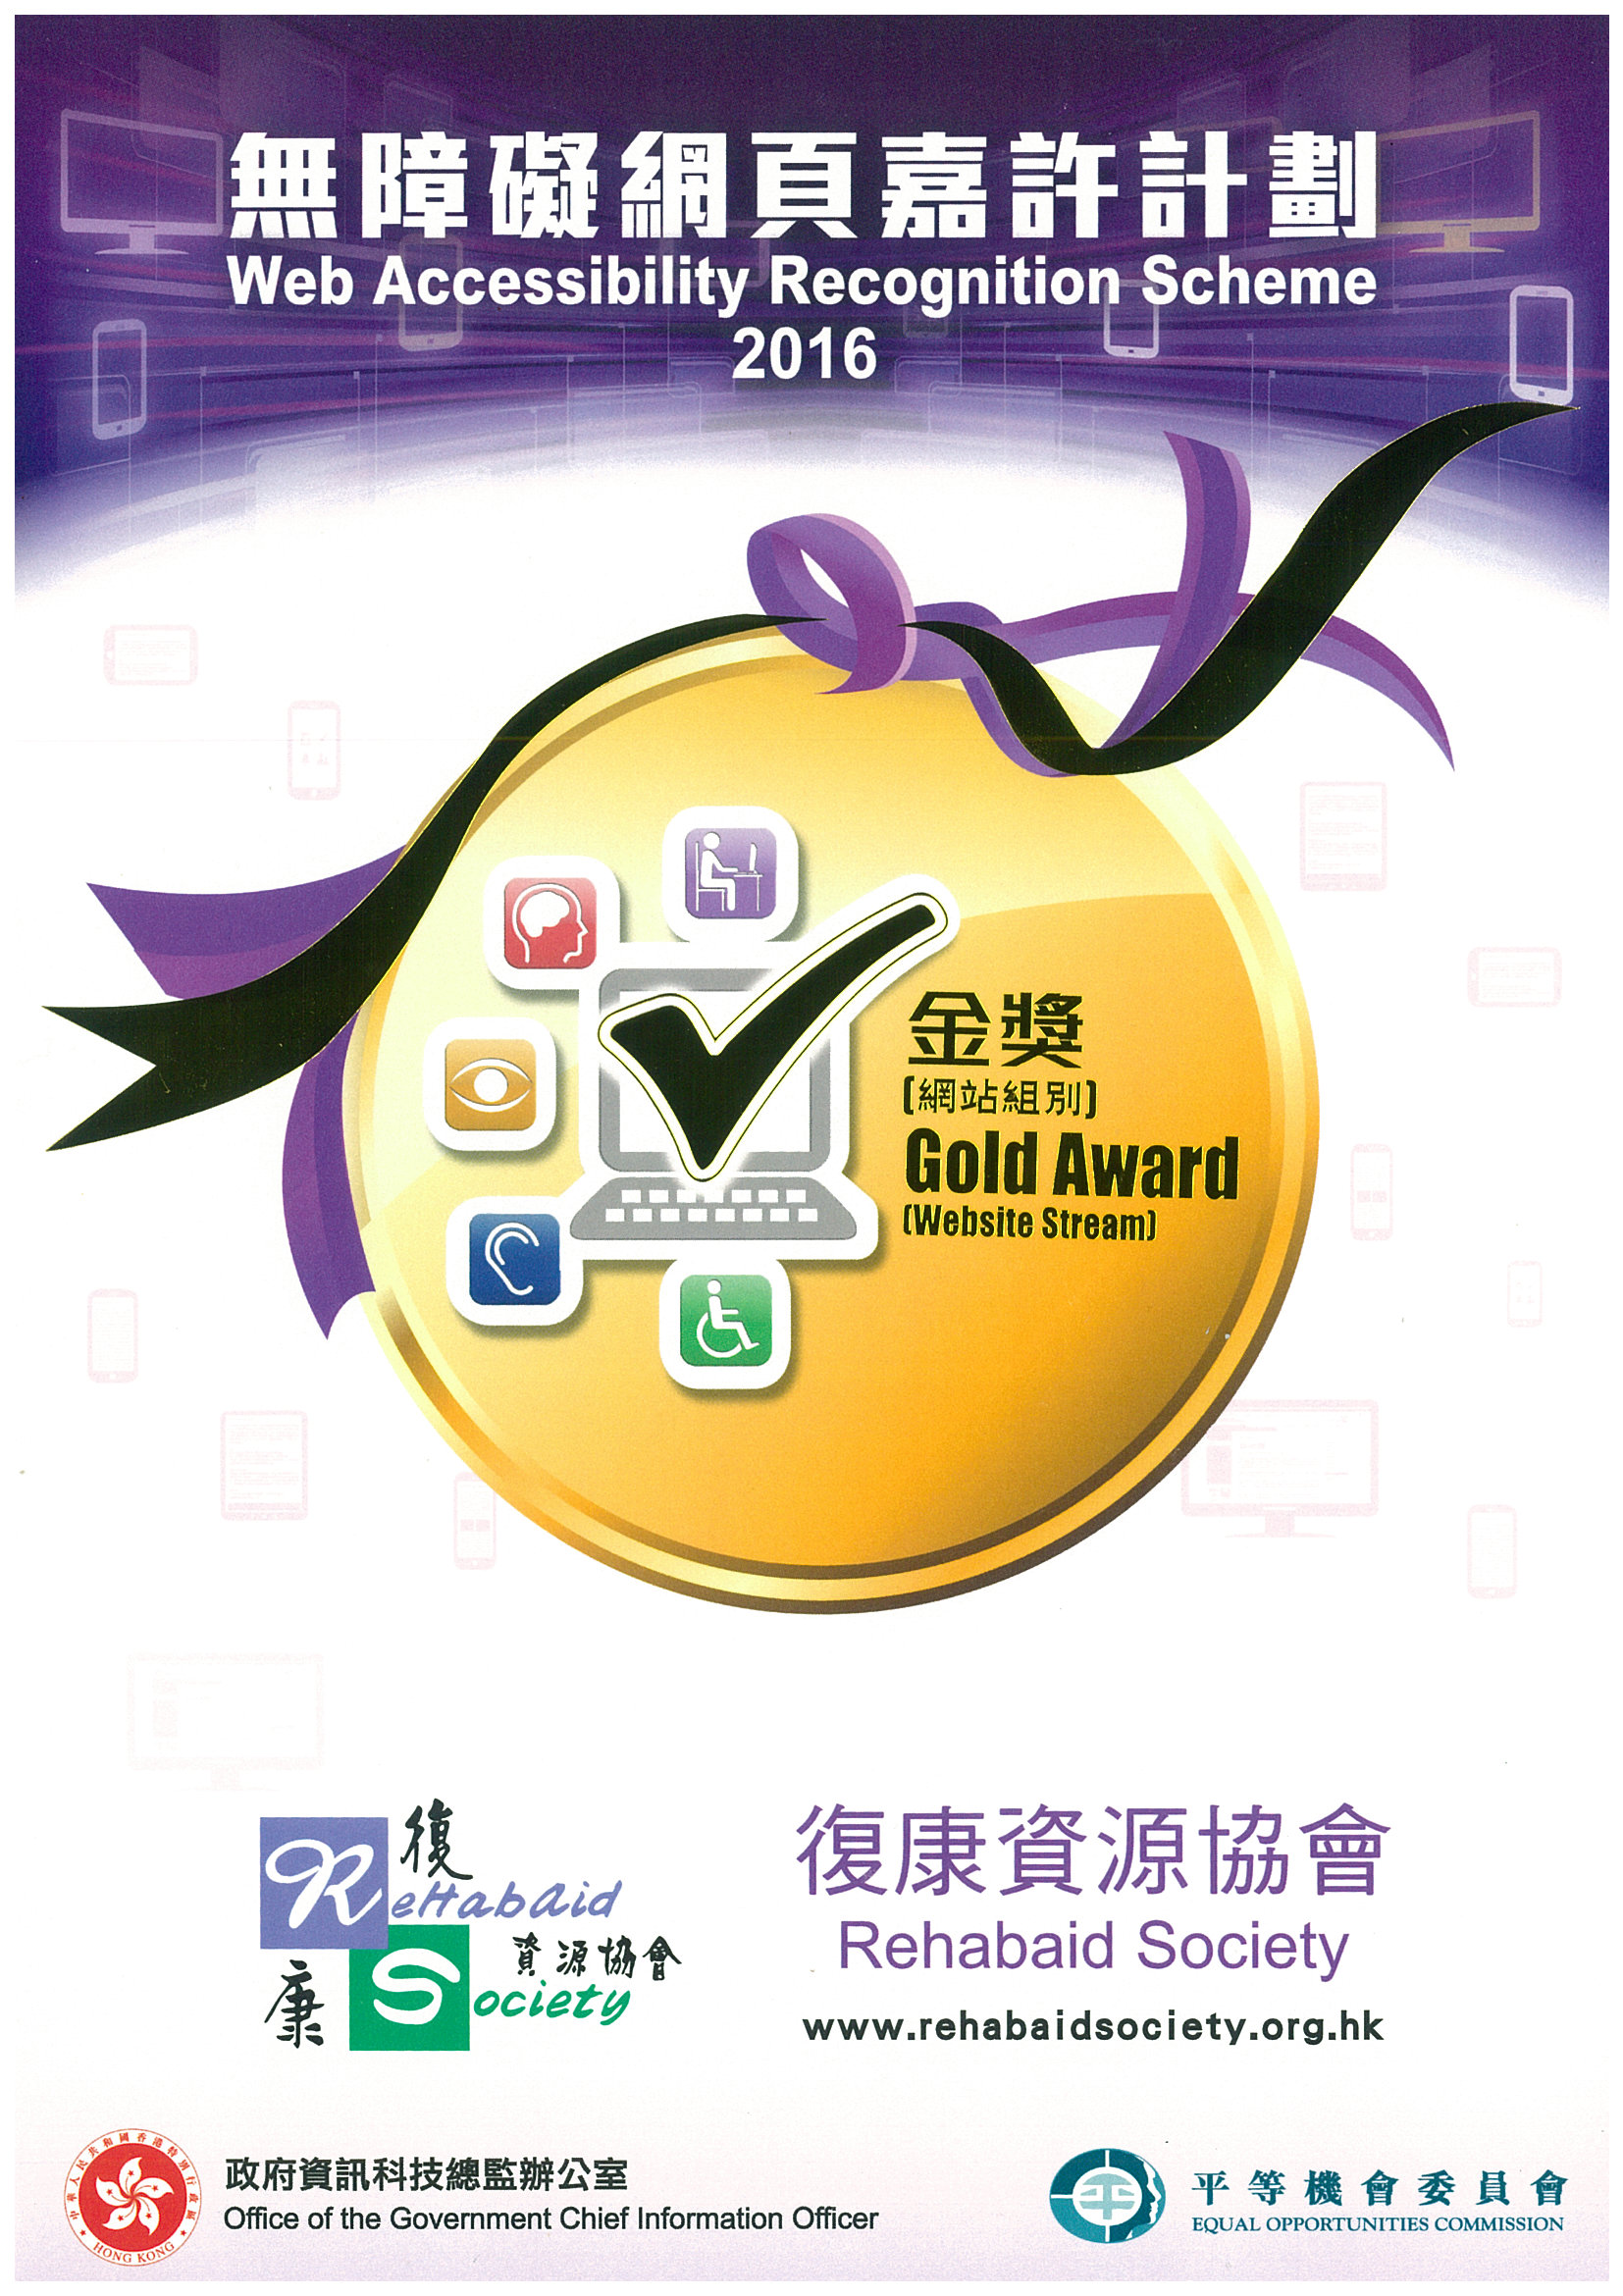 Web Accessibility Recognition Scheme 2016 - Gold Award (Website Stream)